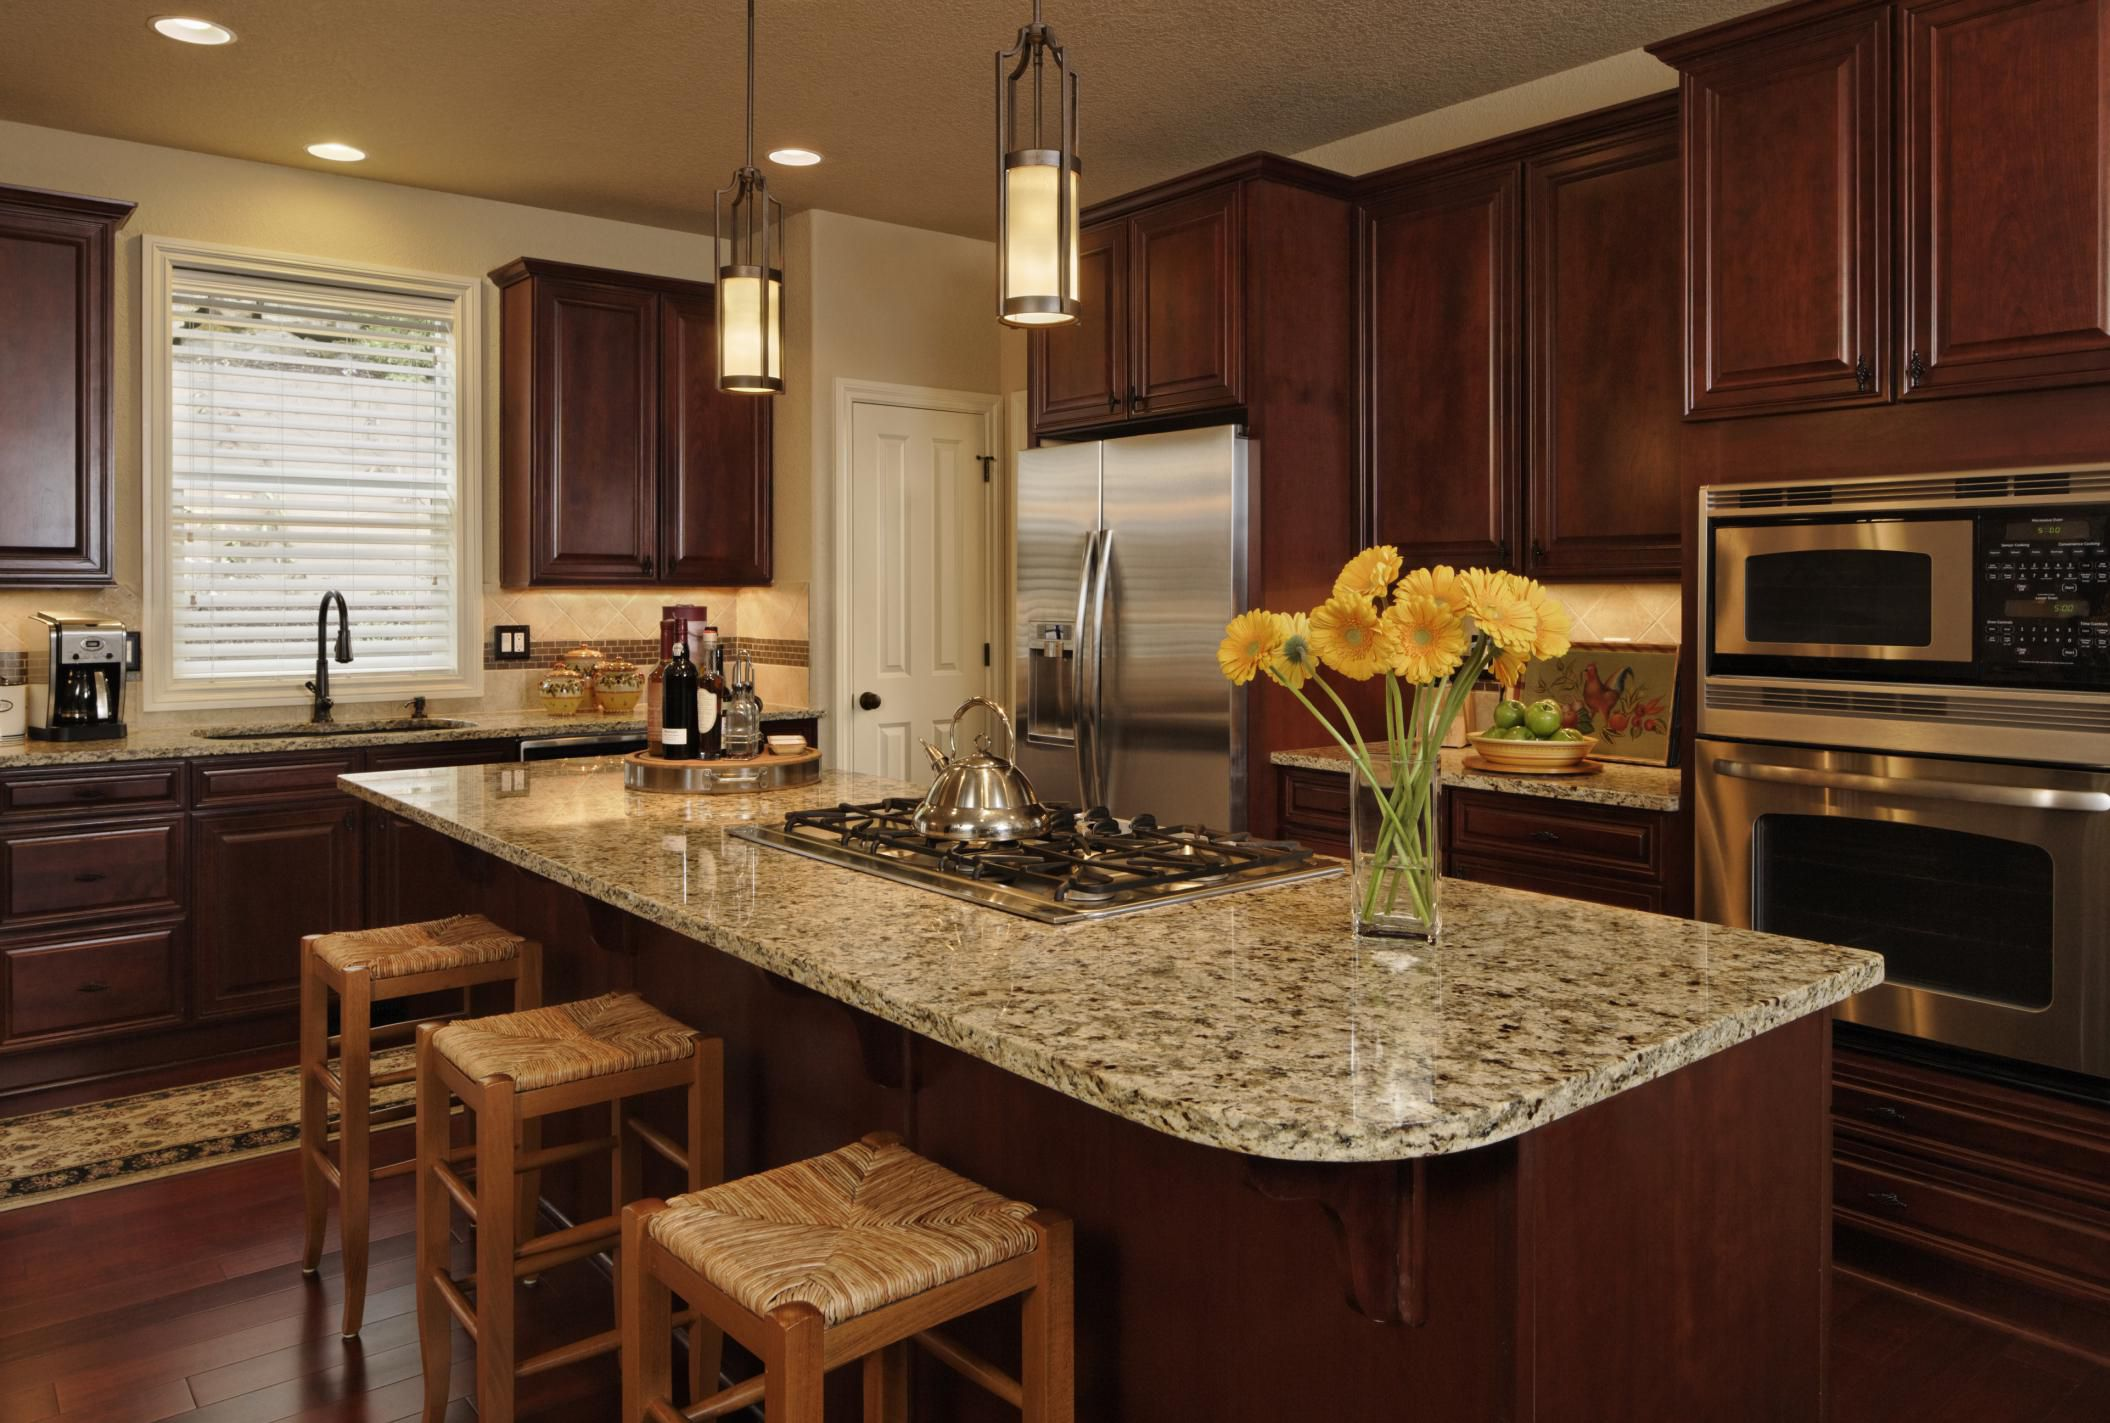 colors cabinets countertops design for best pin article look with looks what about white countertop color kitchen all